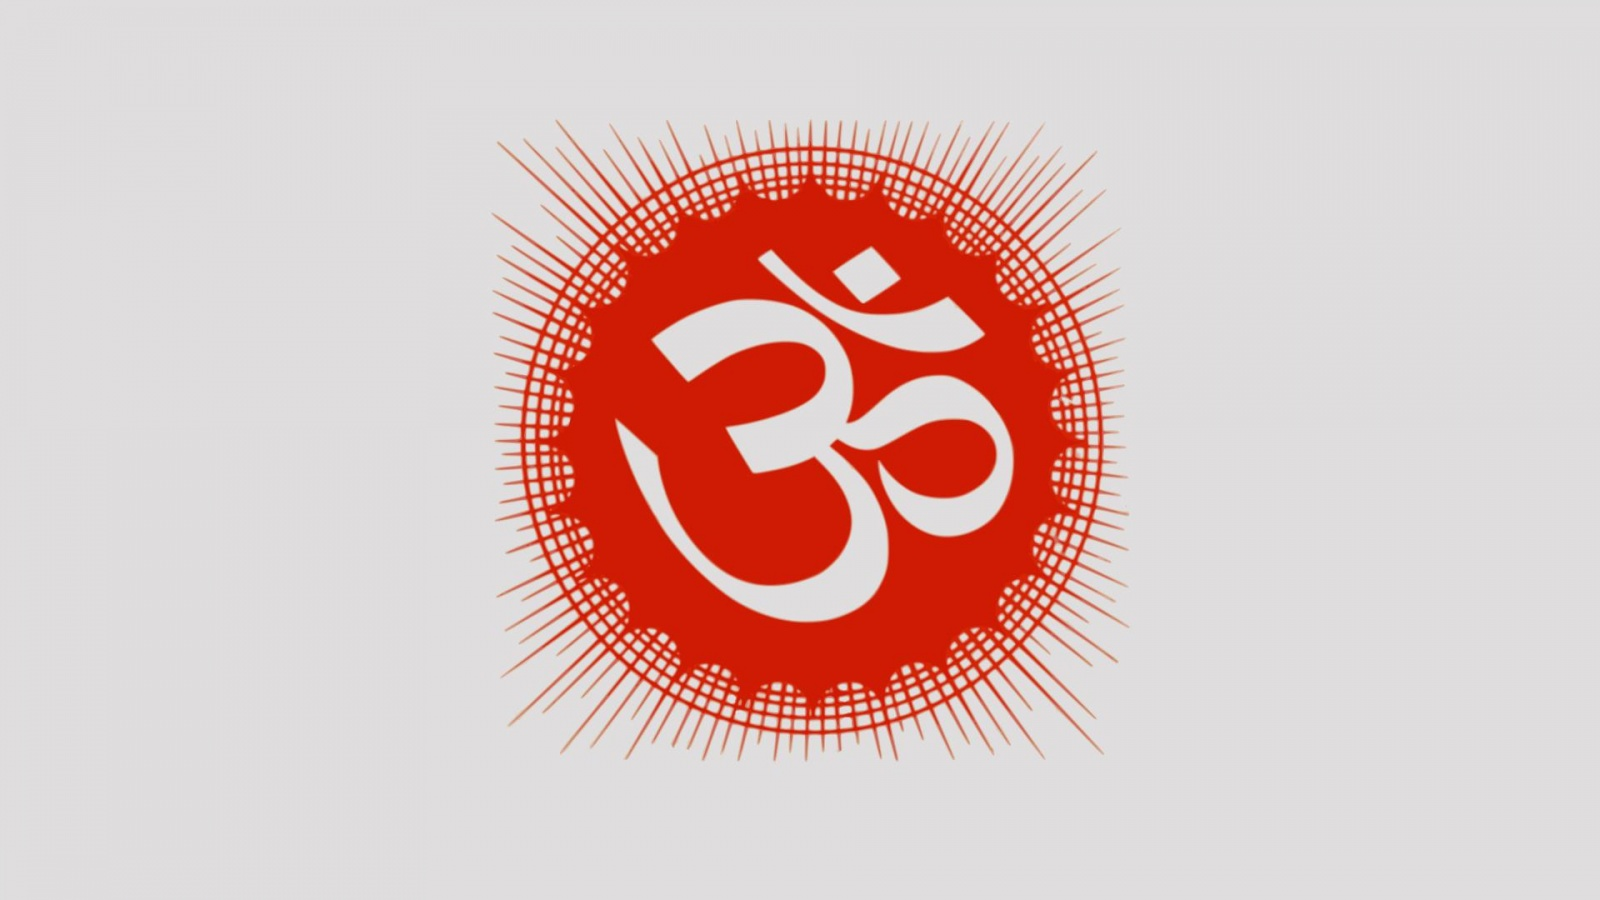 Om Hindu Symbols Wallpapers - 1600x900 - 205997